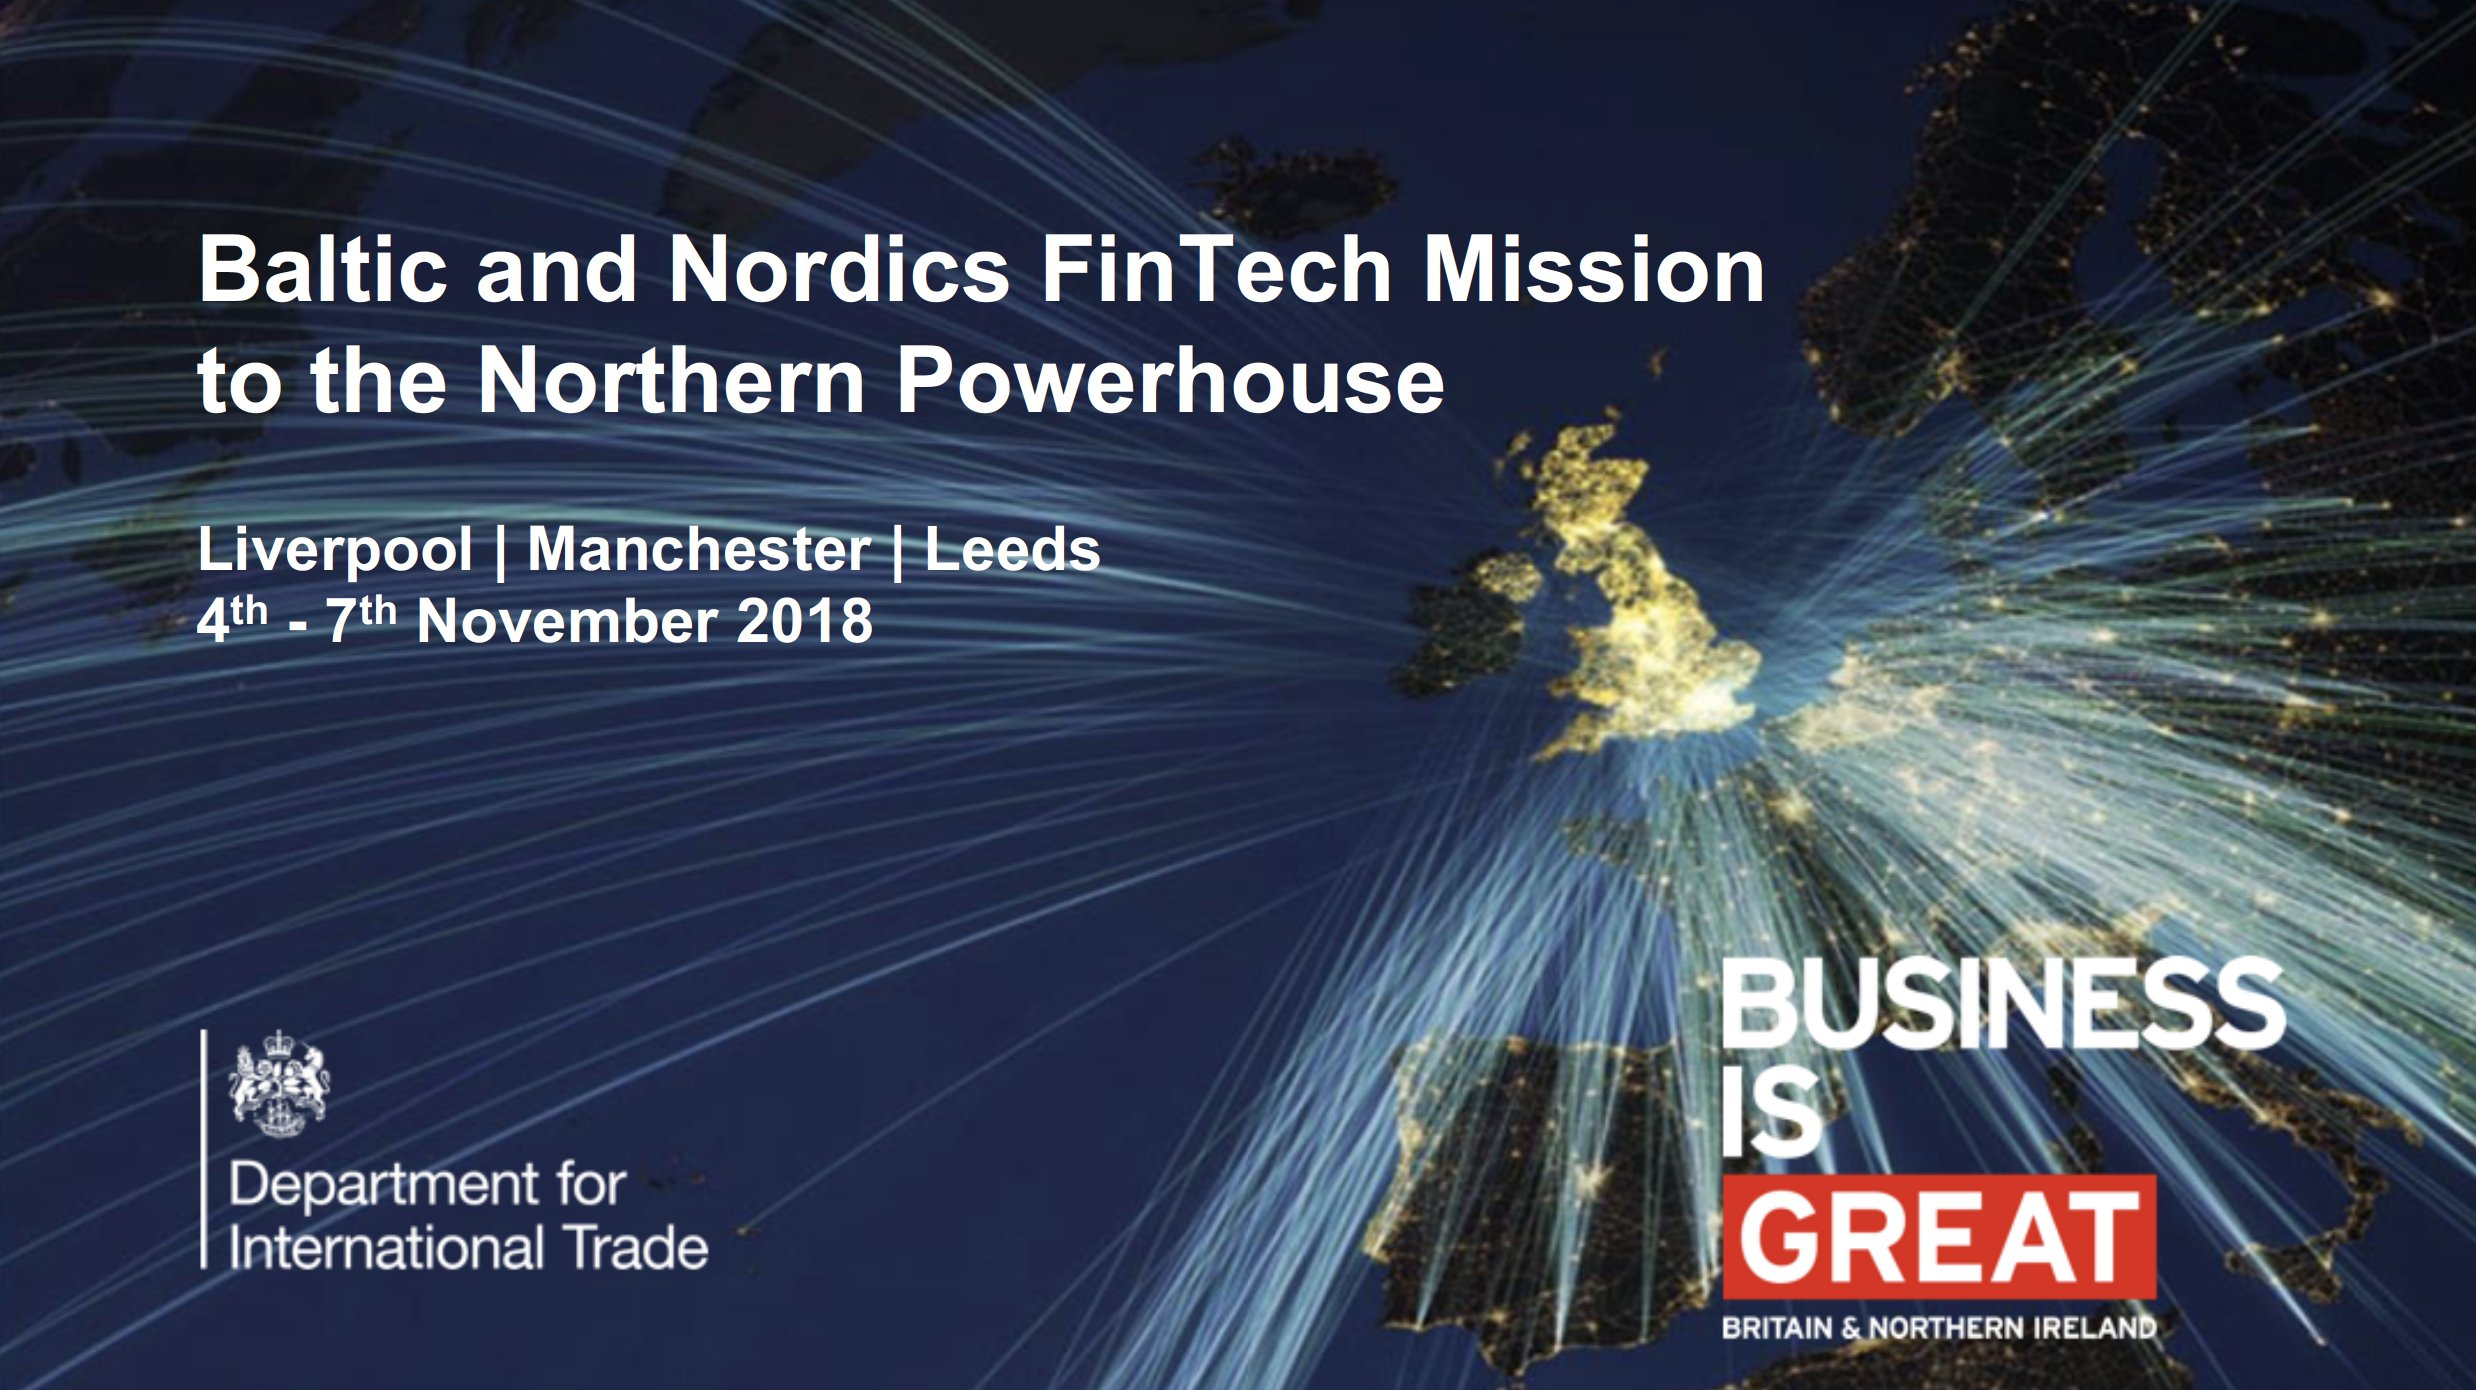 FinTech North to host trilogy of events for Nordic and Baltic FinTech delegation in November